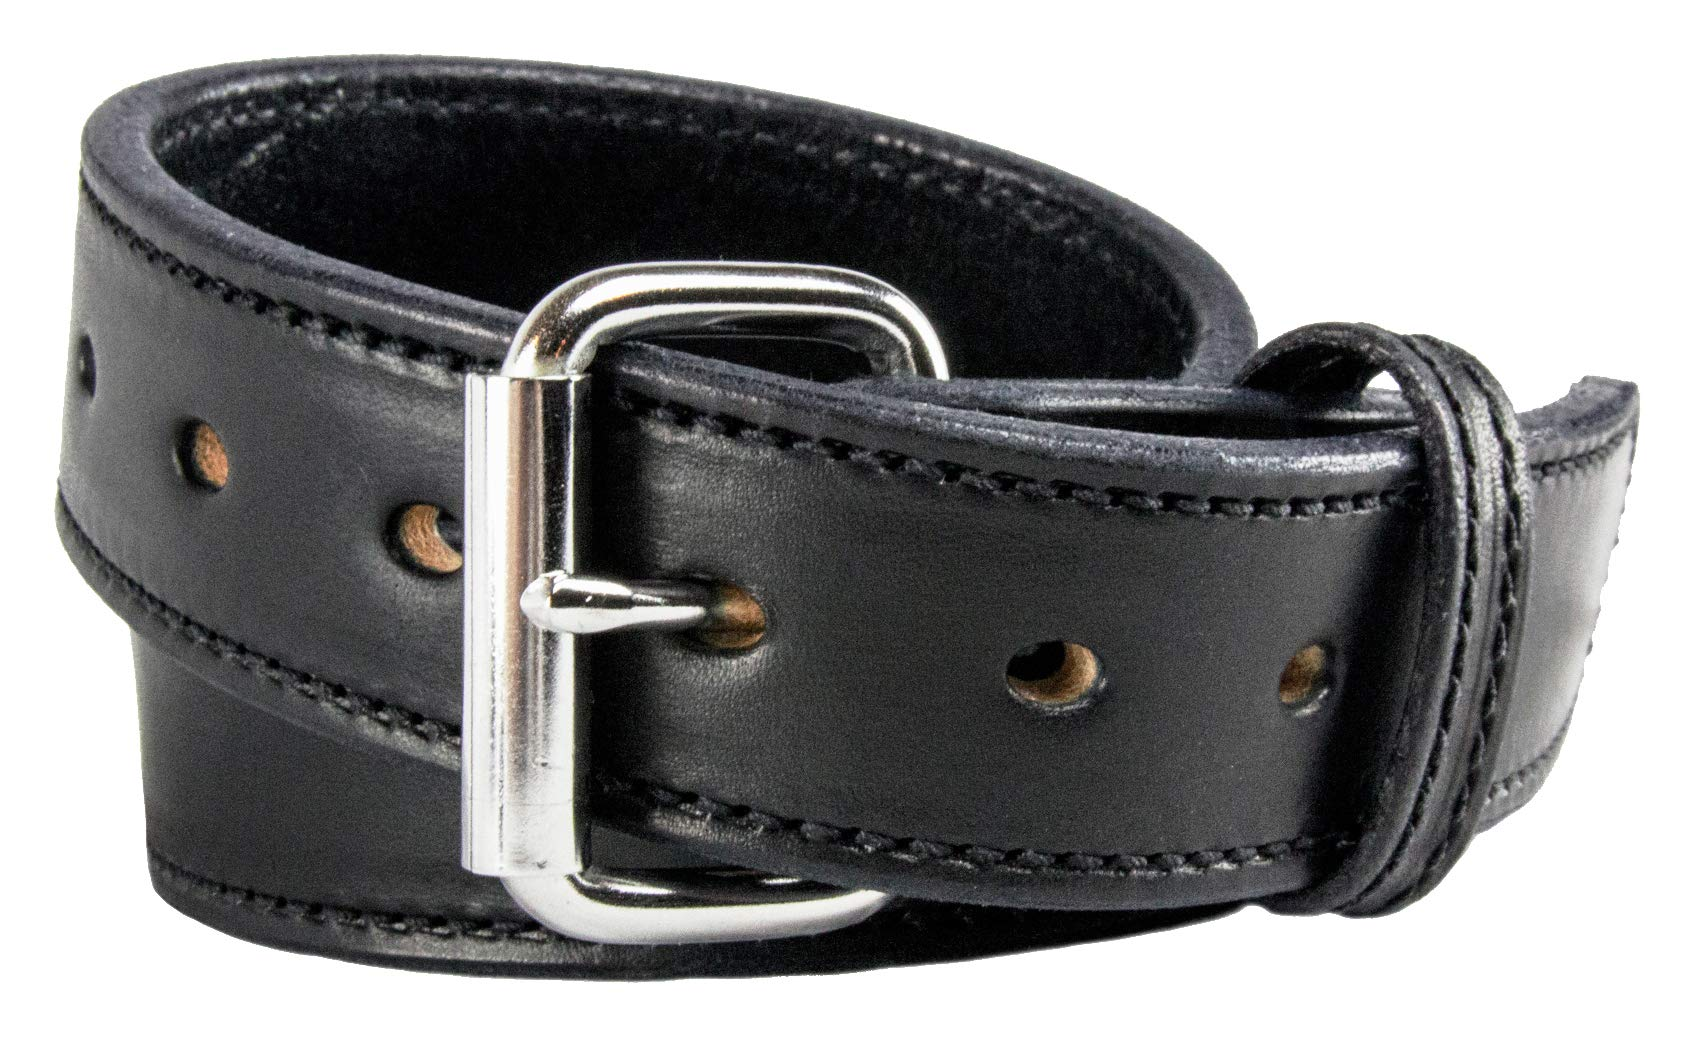 Relentless Tactical The Ultimate Concealed Carry CCW Leather Gun Belt - 14 Ounce 1 1/2 Inch Premium Full Grain Leather Belt - Handmade in The USA! Black Size 32